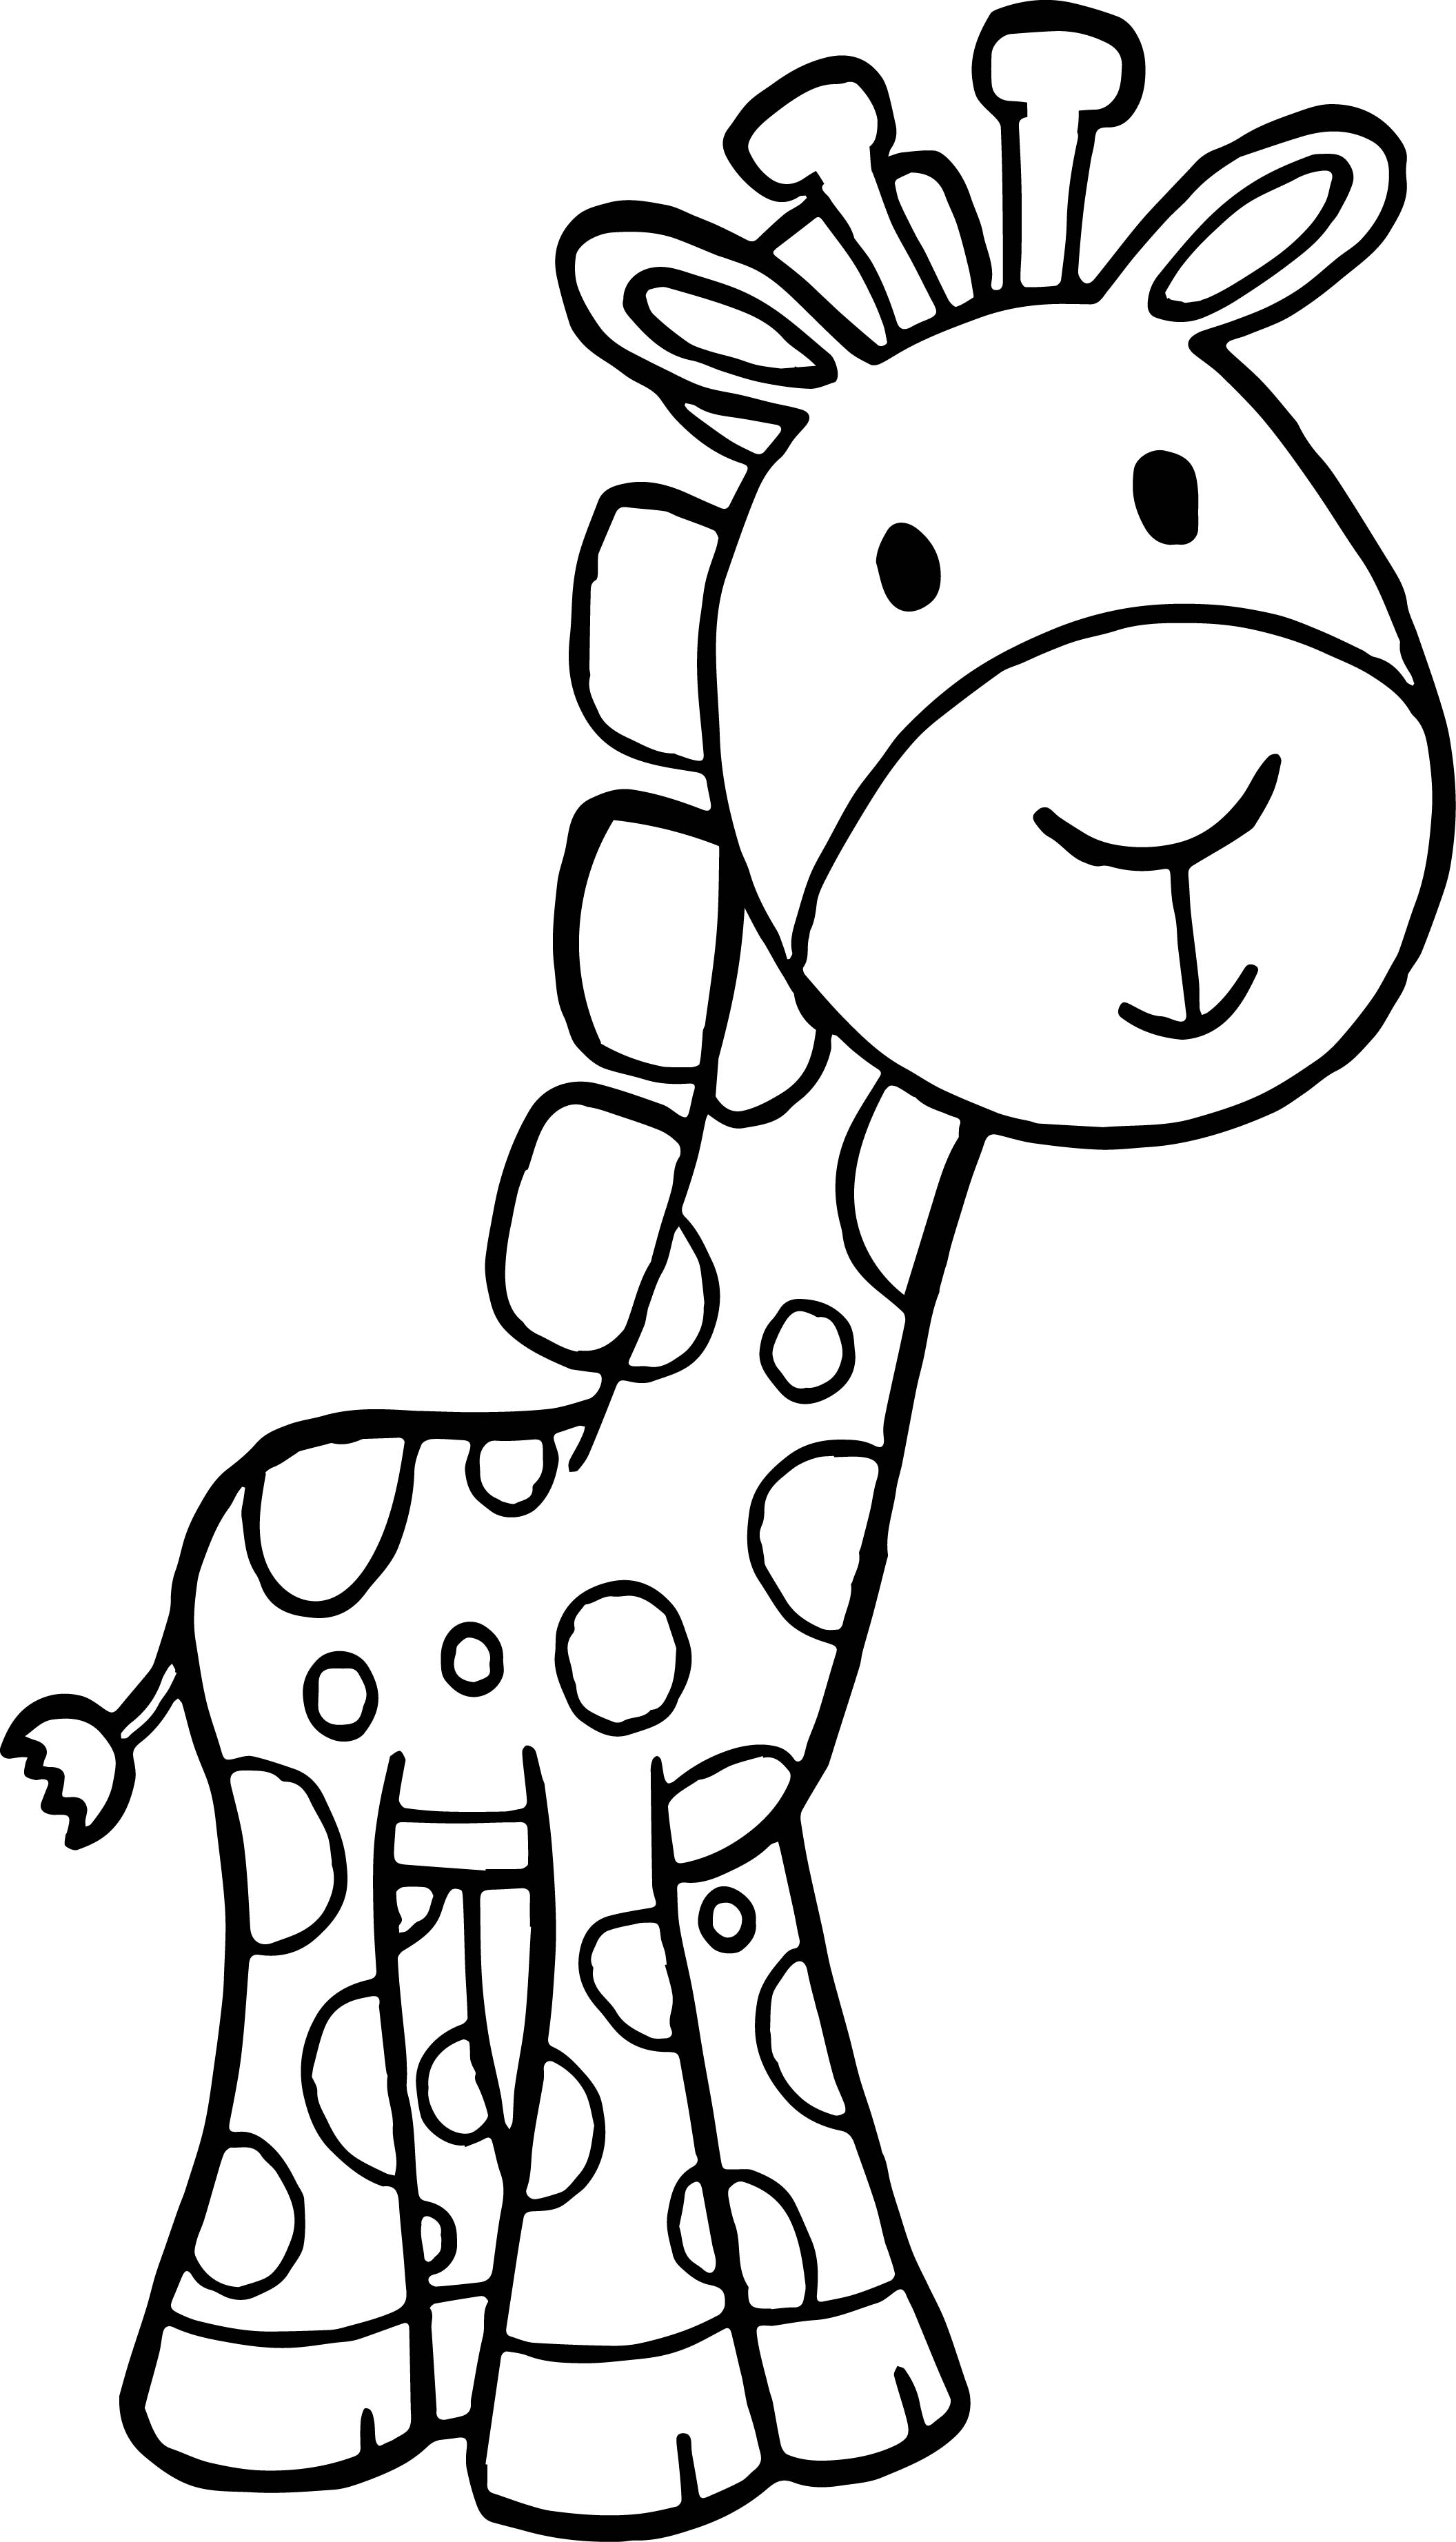 Giraffe Cartoon Free Kids Beautiful Coloring Page